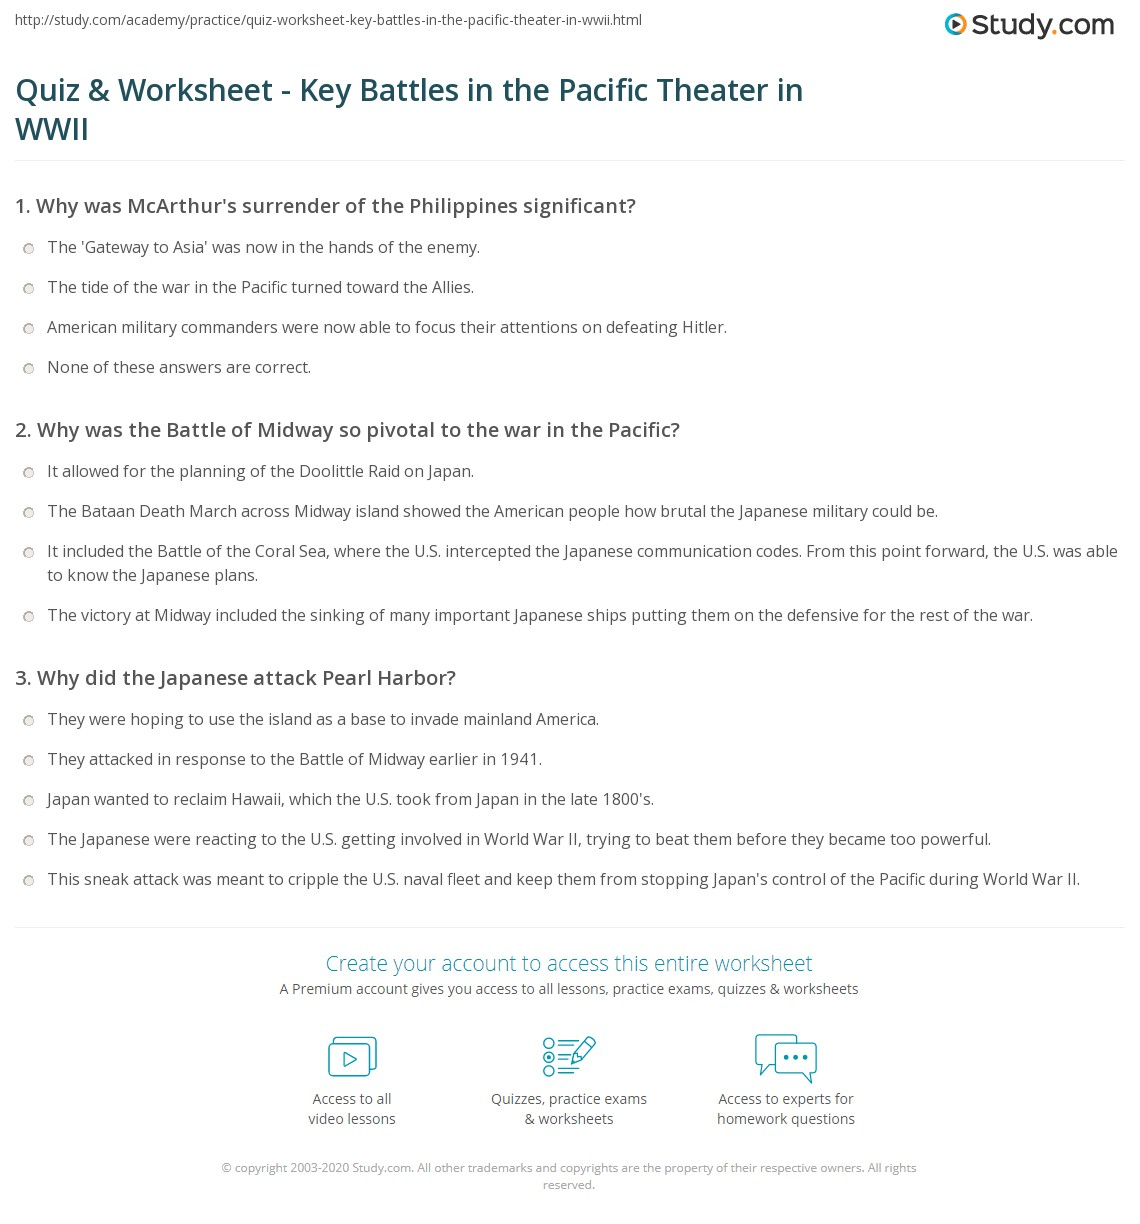 Quiz & Worksheet - Key Battles in the Pacific Theater in